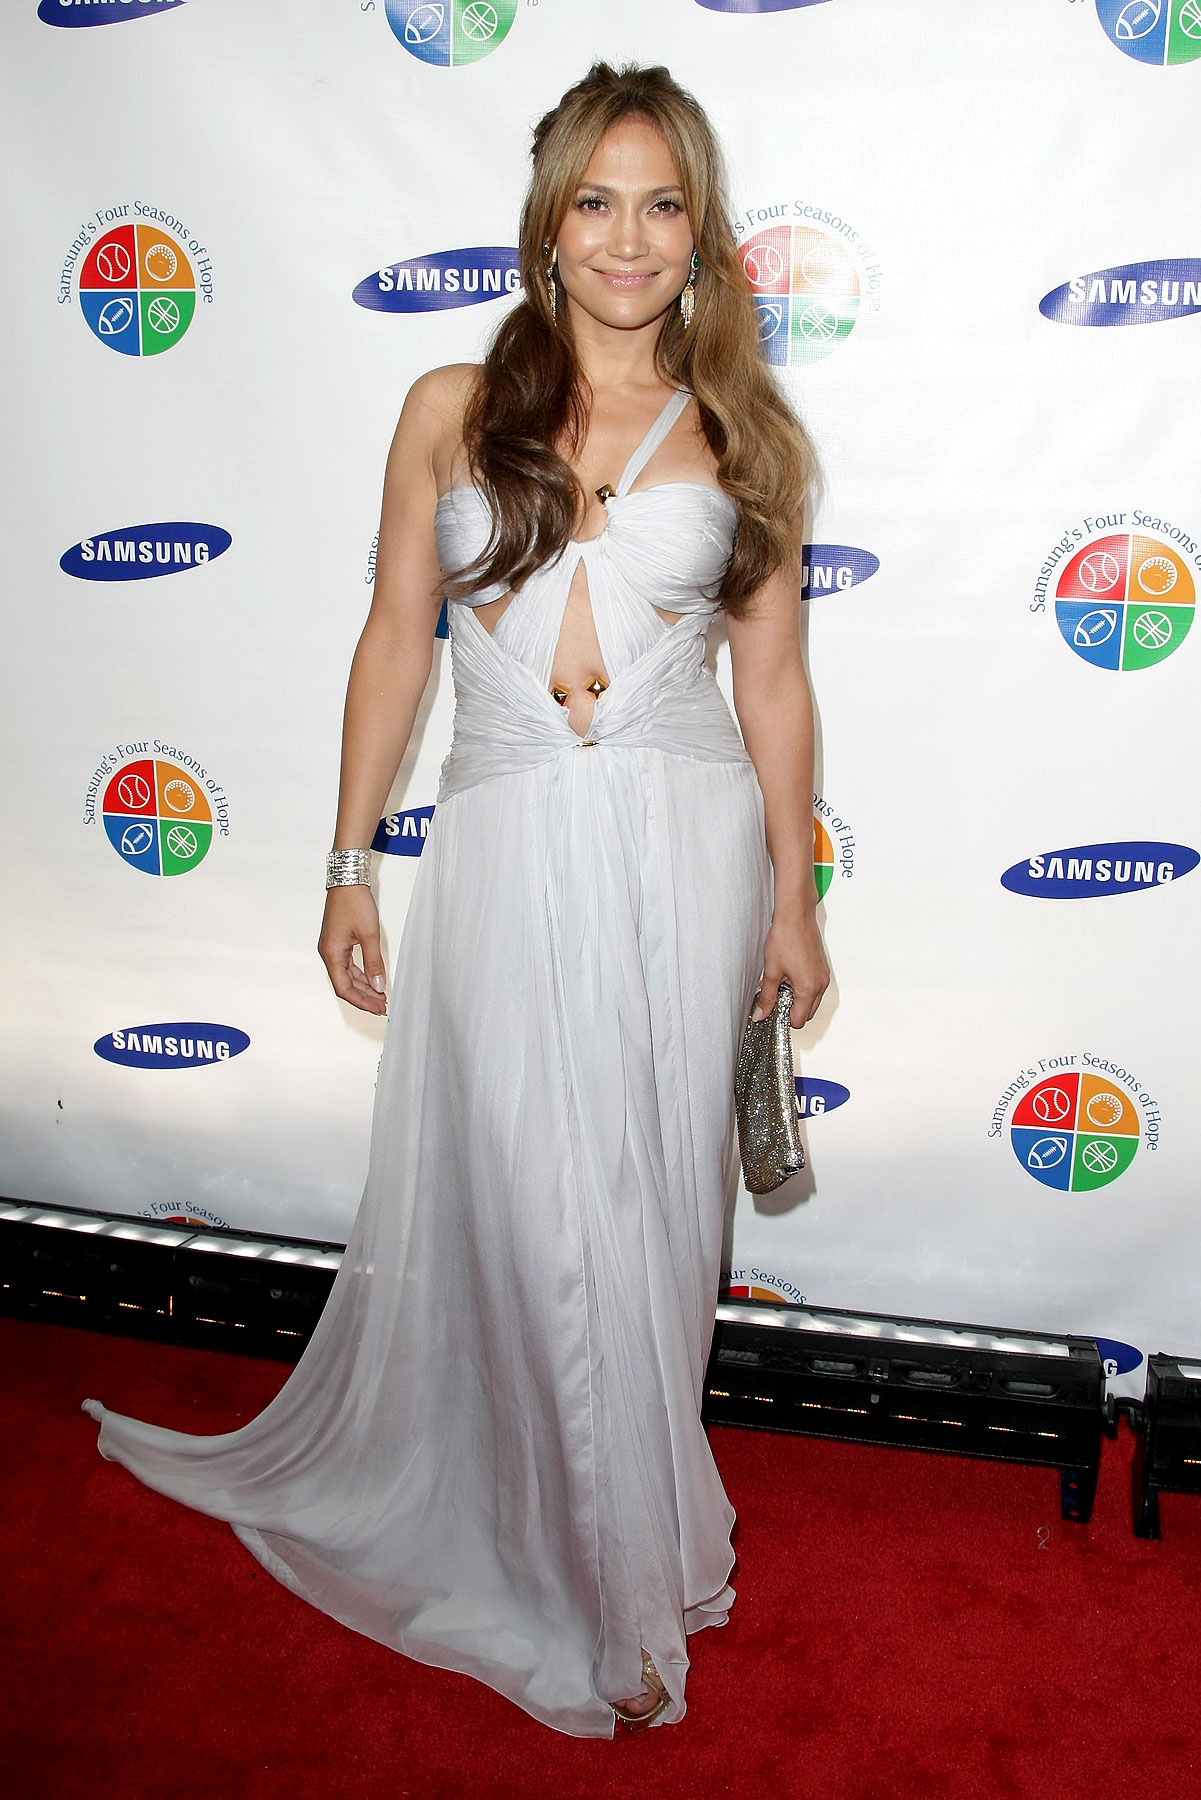 Fashion FTW: Jennifer Lopez Can't Get Enough Of The Red Carpet (PHOTOS)